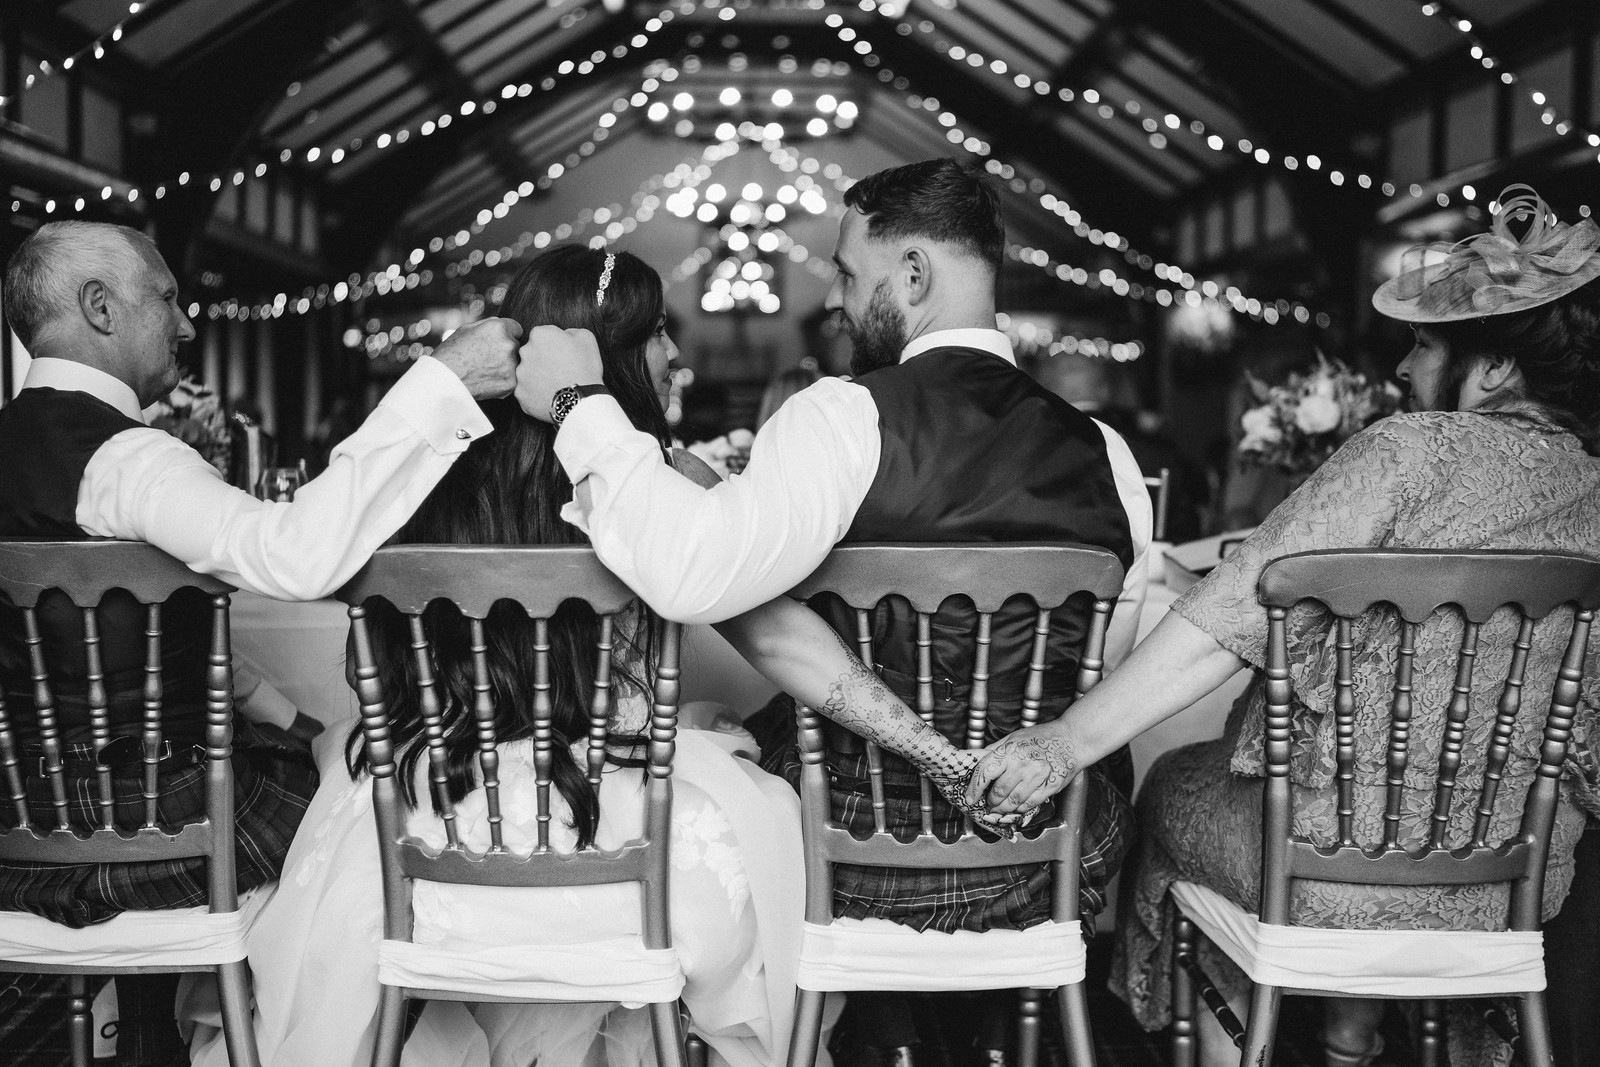 A unique family photo, the bride and groom look at each other, the bride holds hands with her mother and the groom fist pumps with the brides father